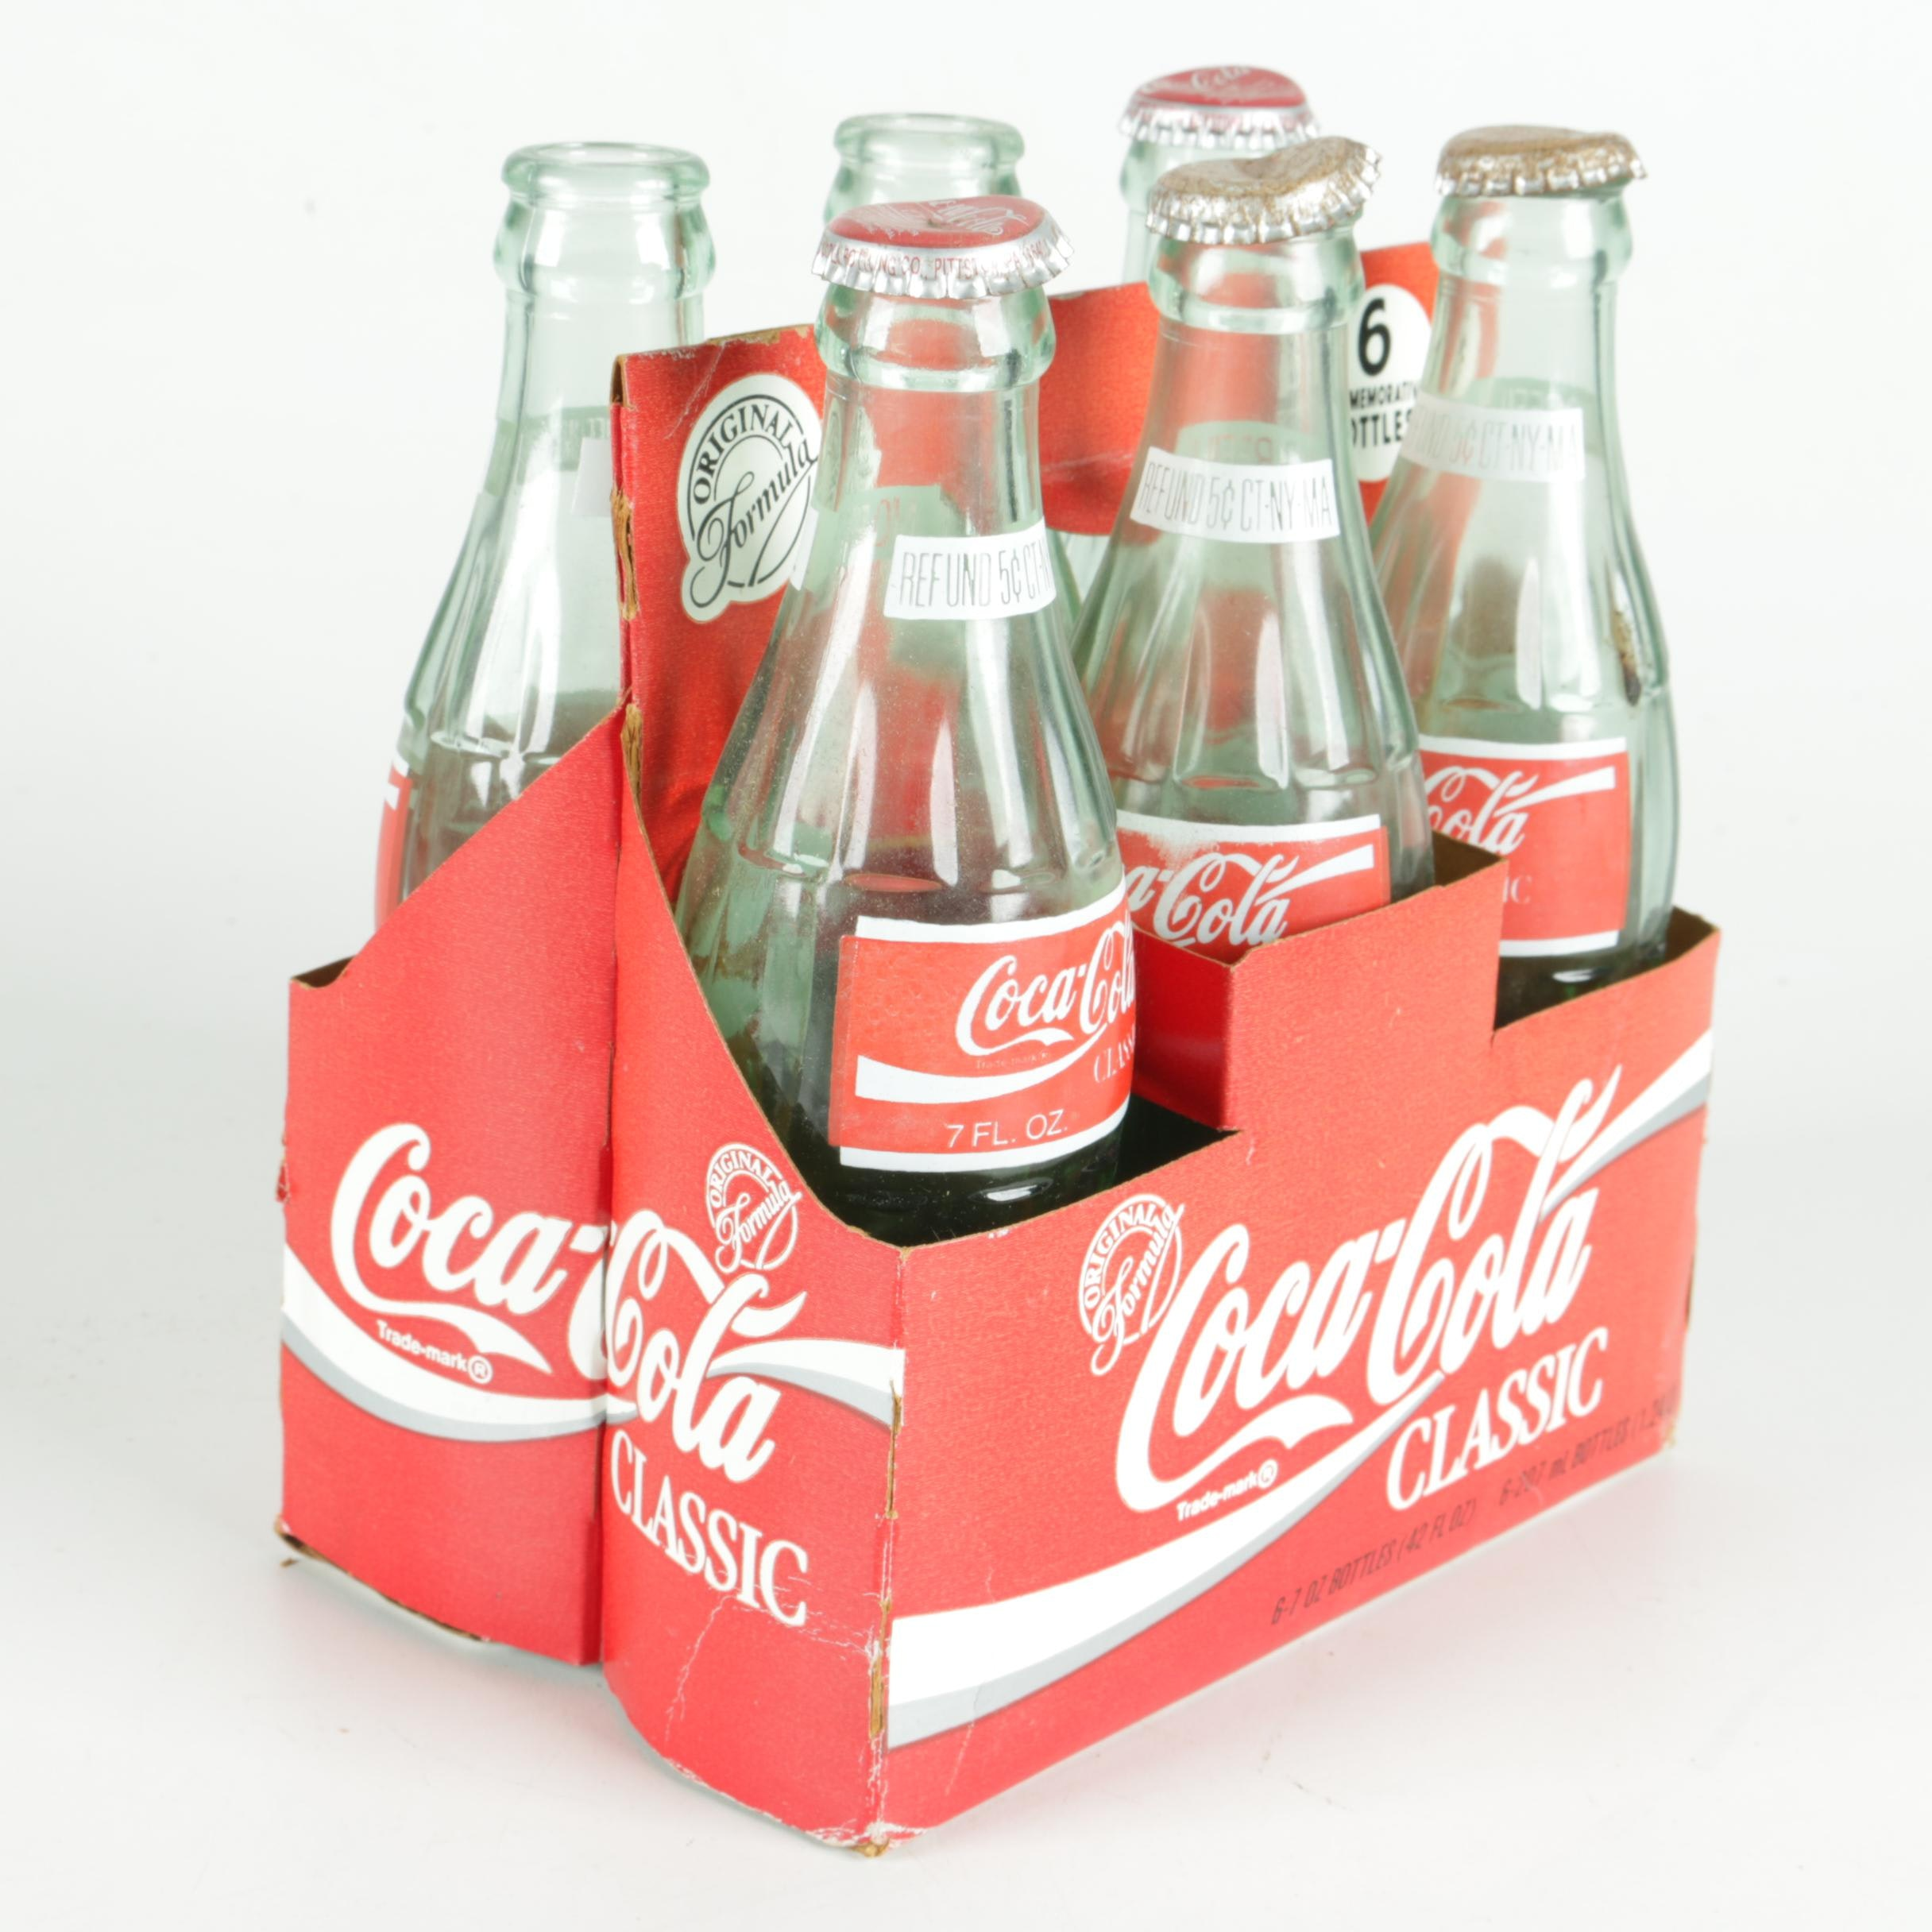 50th Anniversary Coca Cola Cape Cod Collector's Bottles